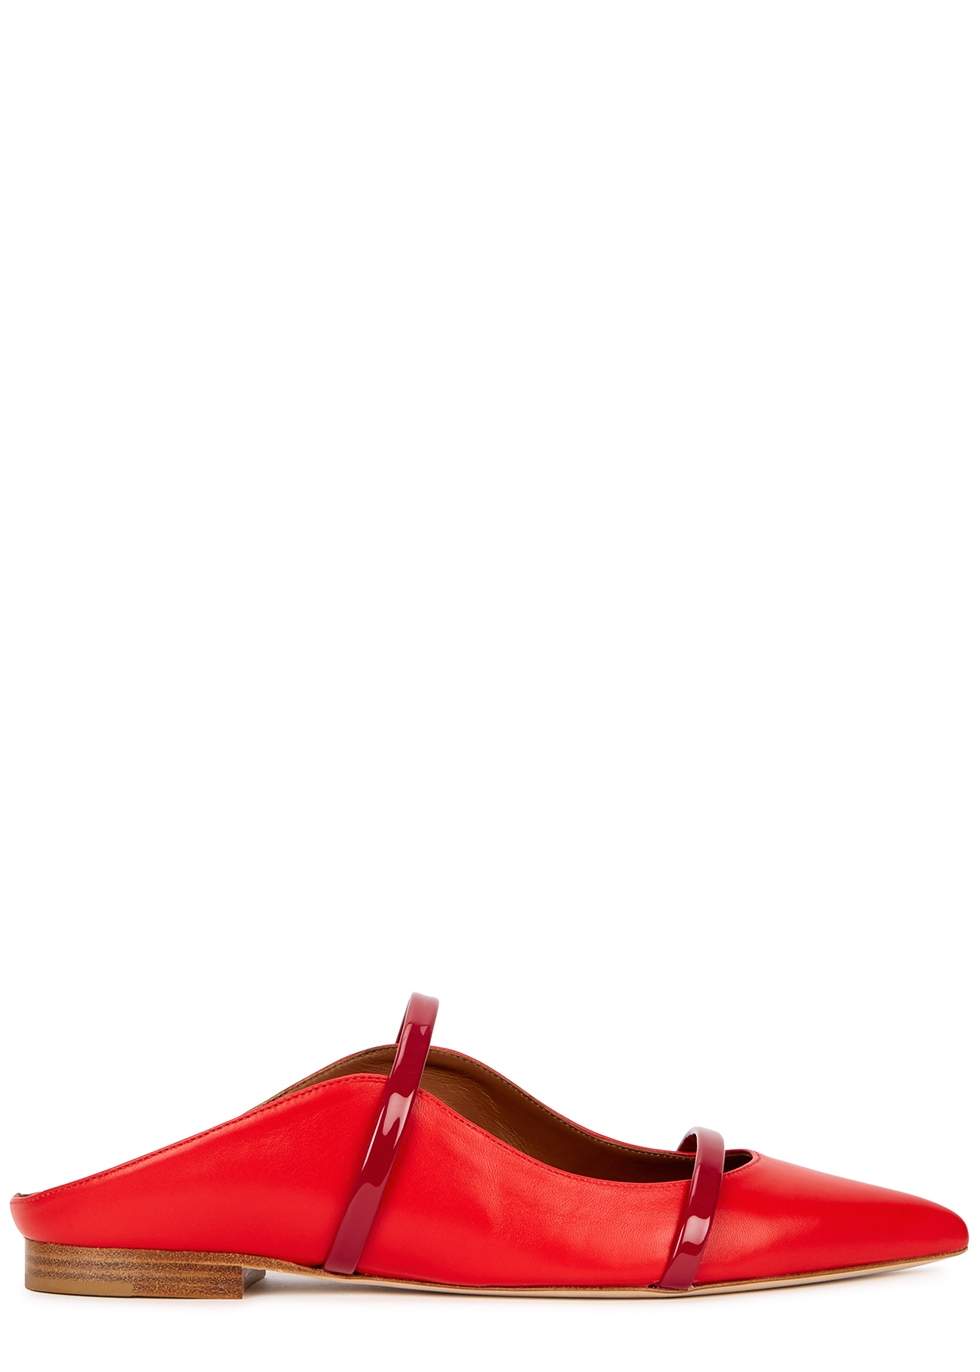 Maureen 10 red leather mules